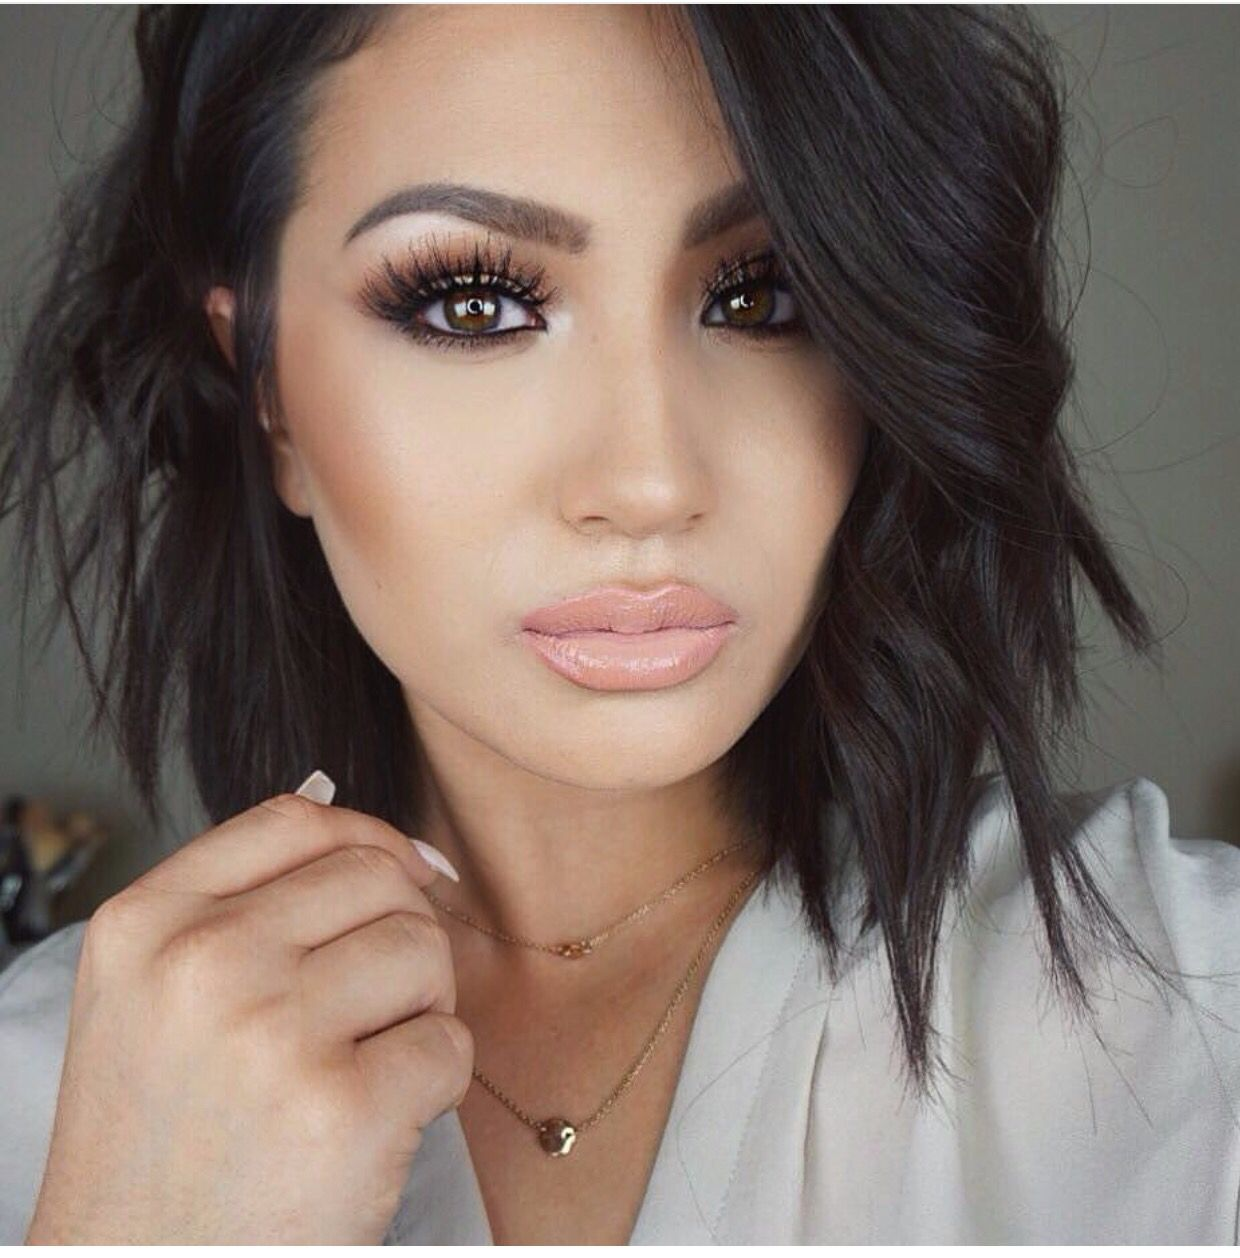 wedding guest i love this look for a wedding because of the flawless skin nice light smokey eye with wispy lashes and nude glossy lip the make up looks